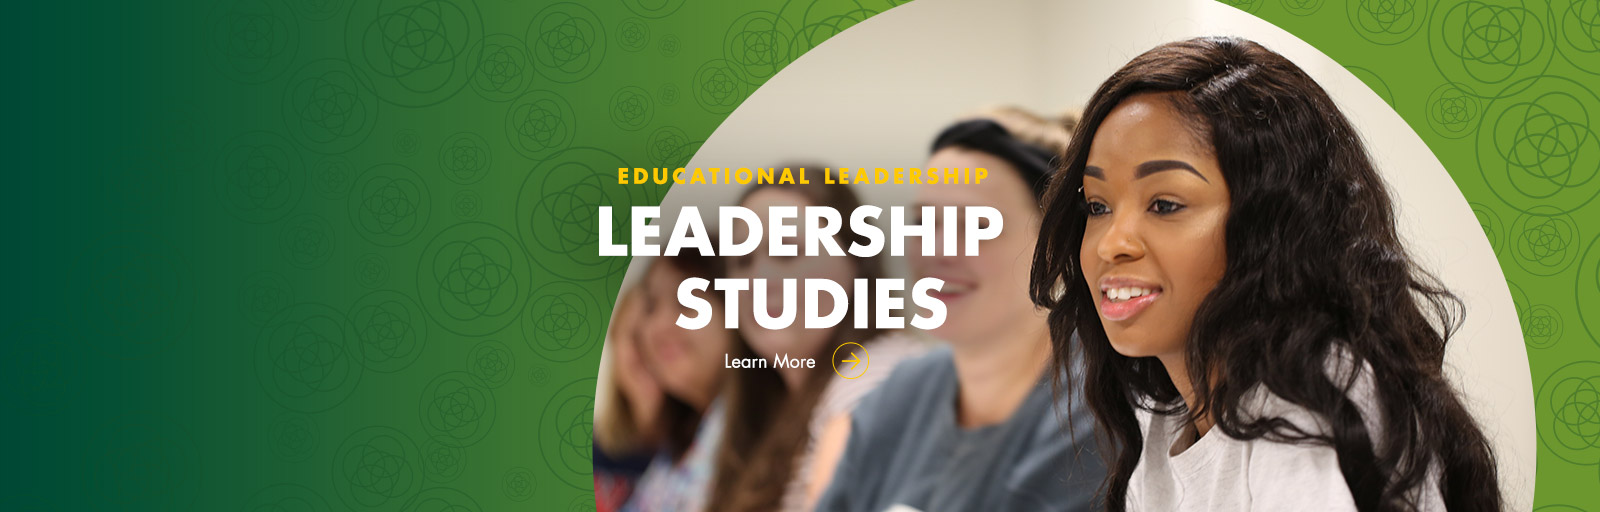 mc_LeadershipStudies